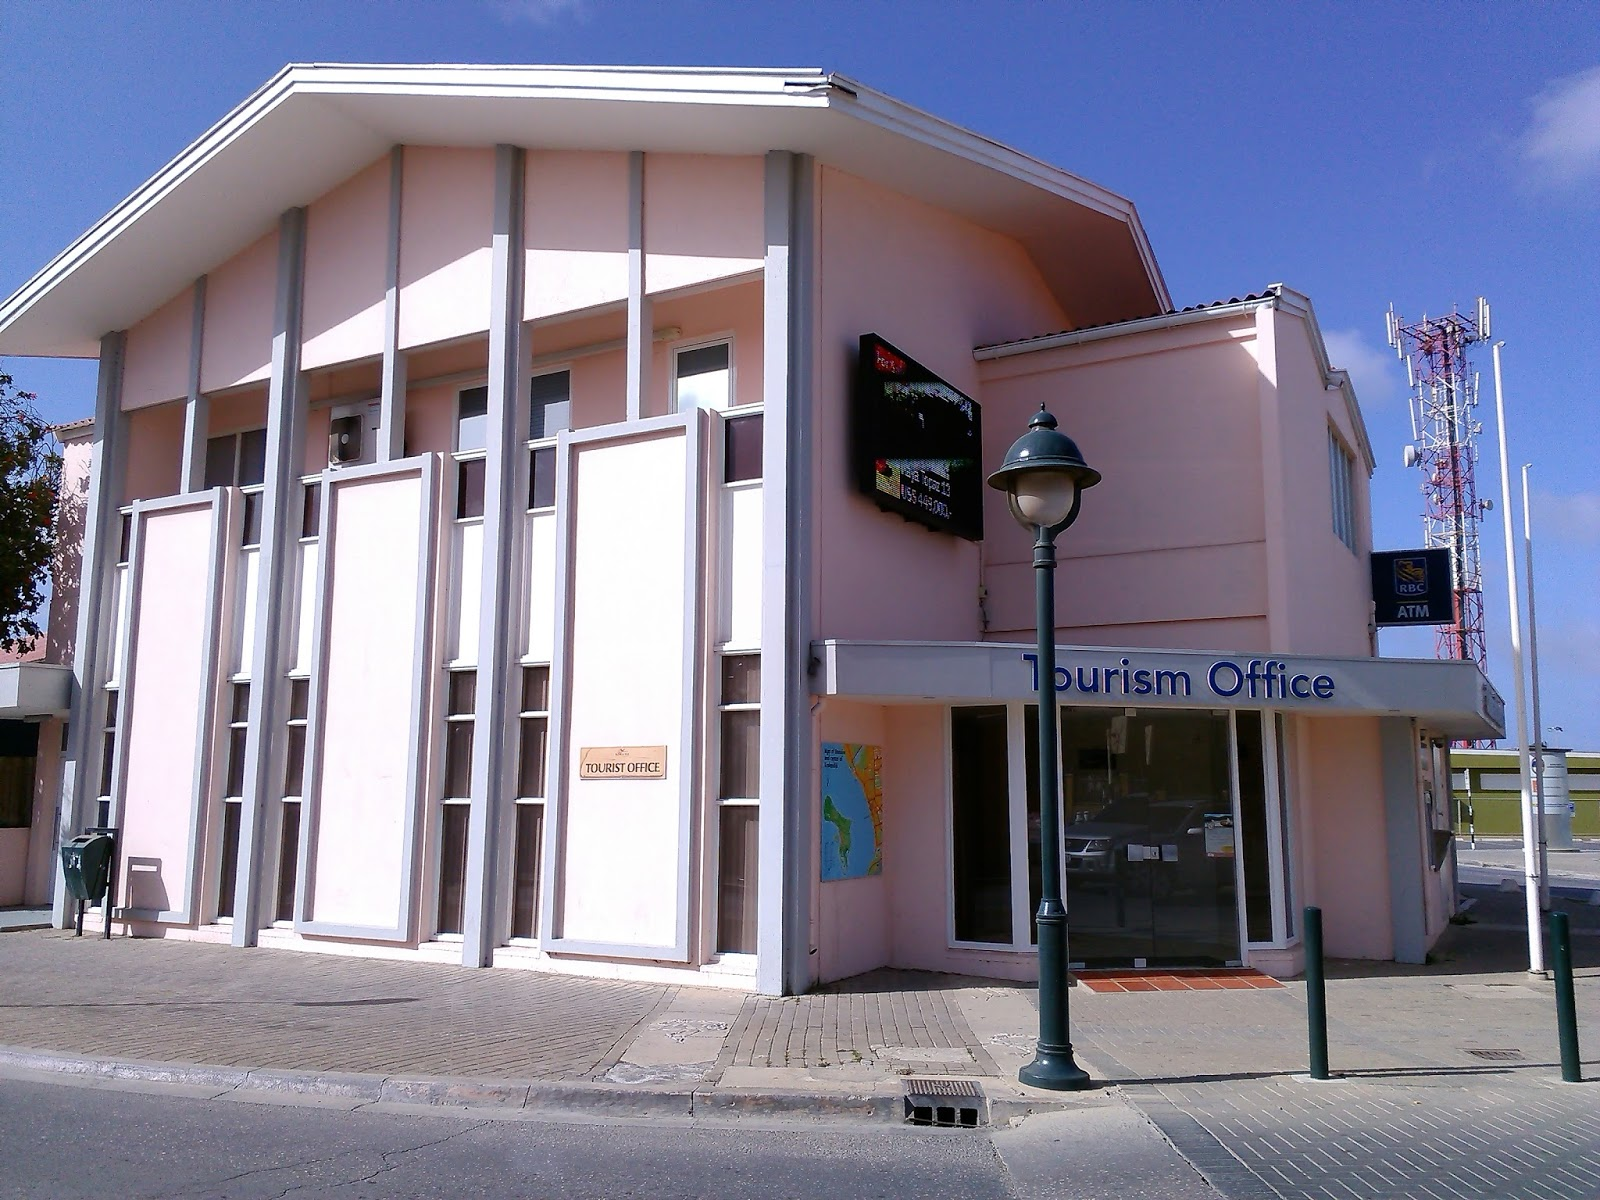 local tourism office